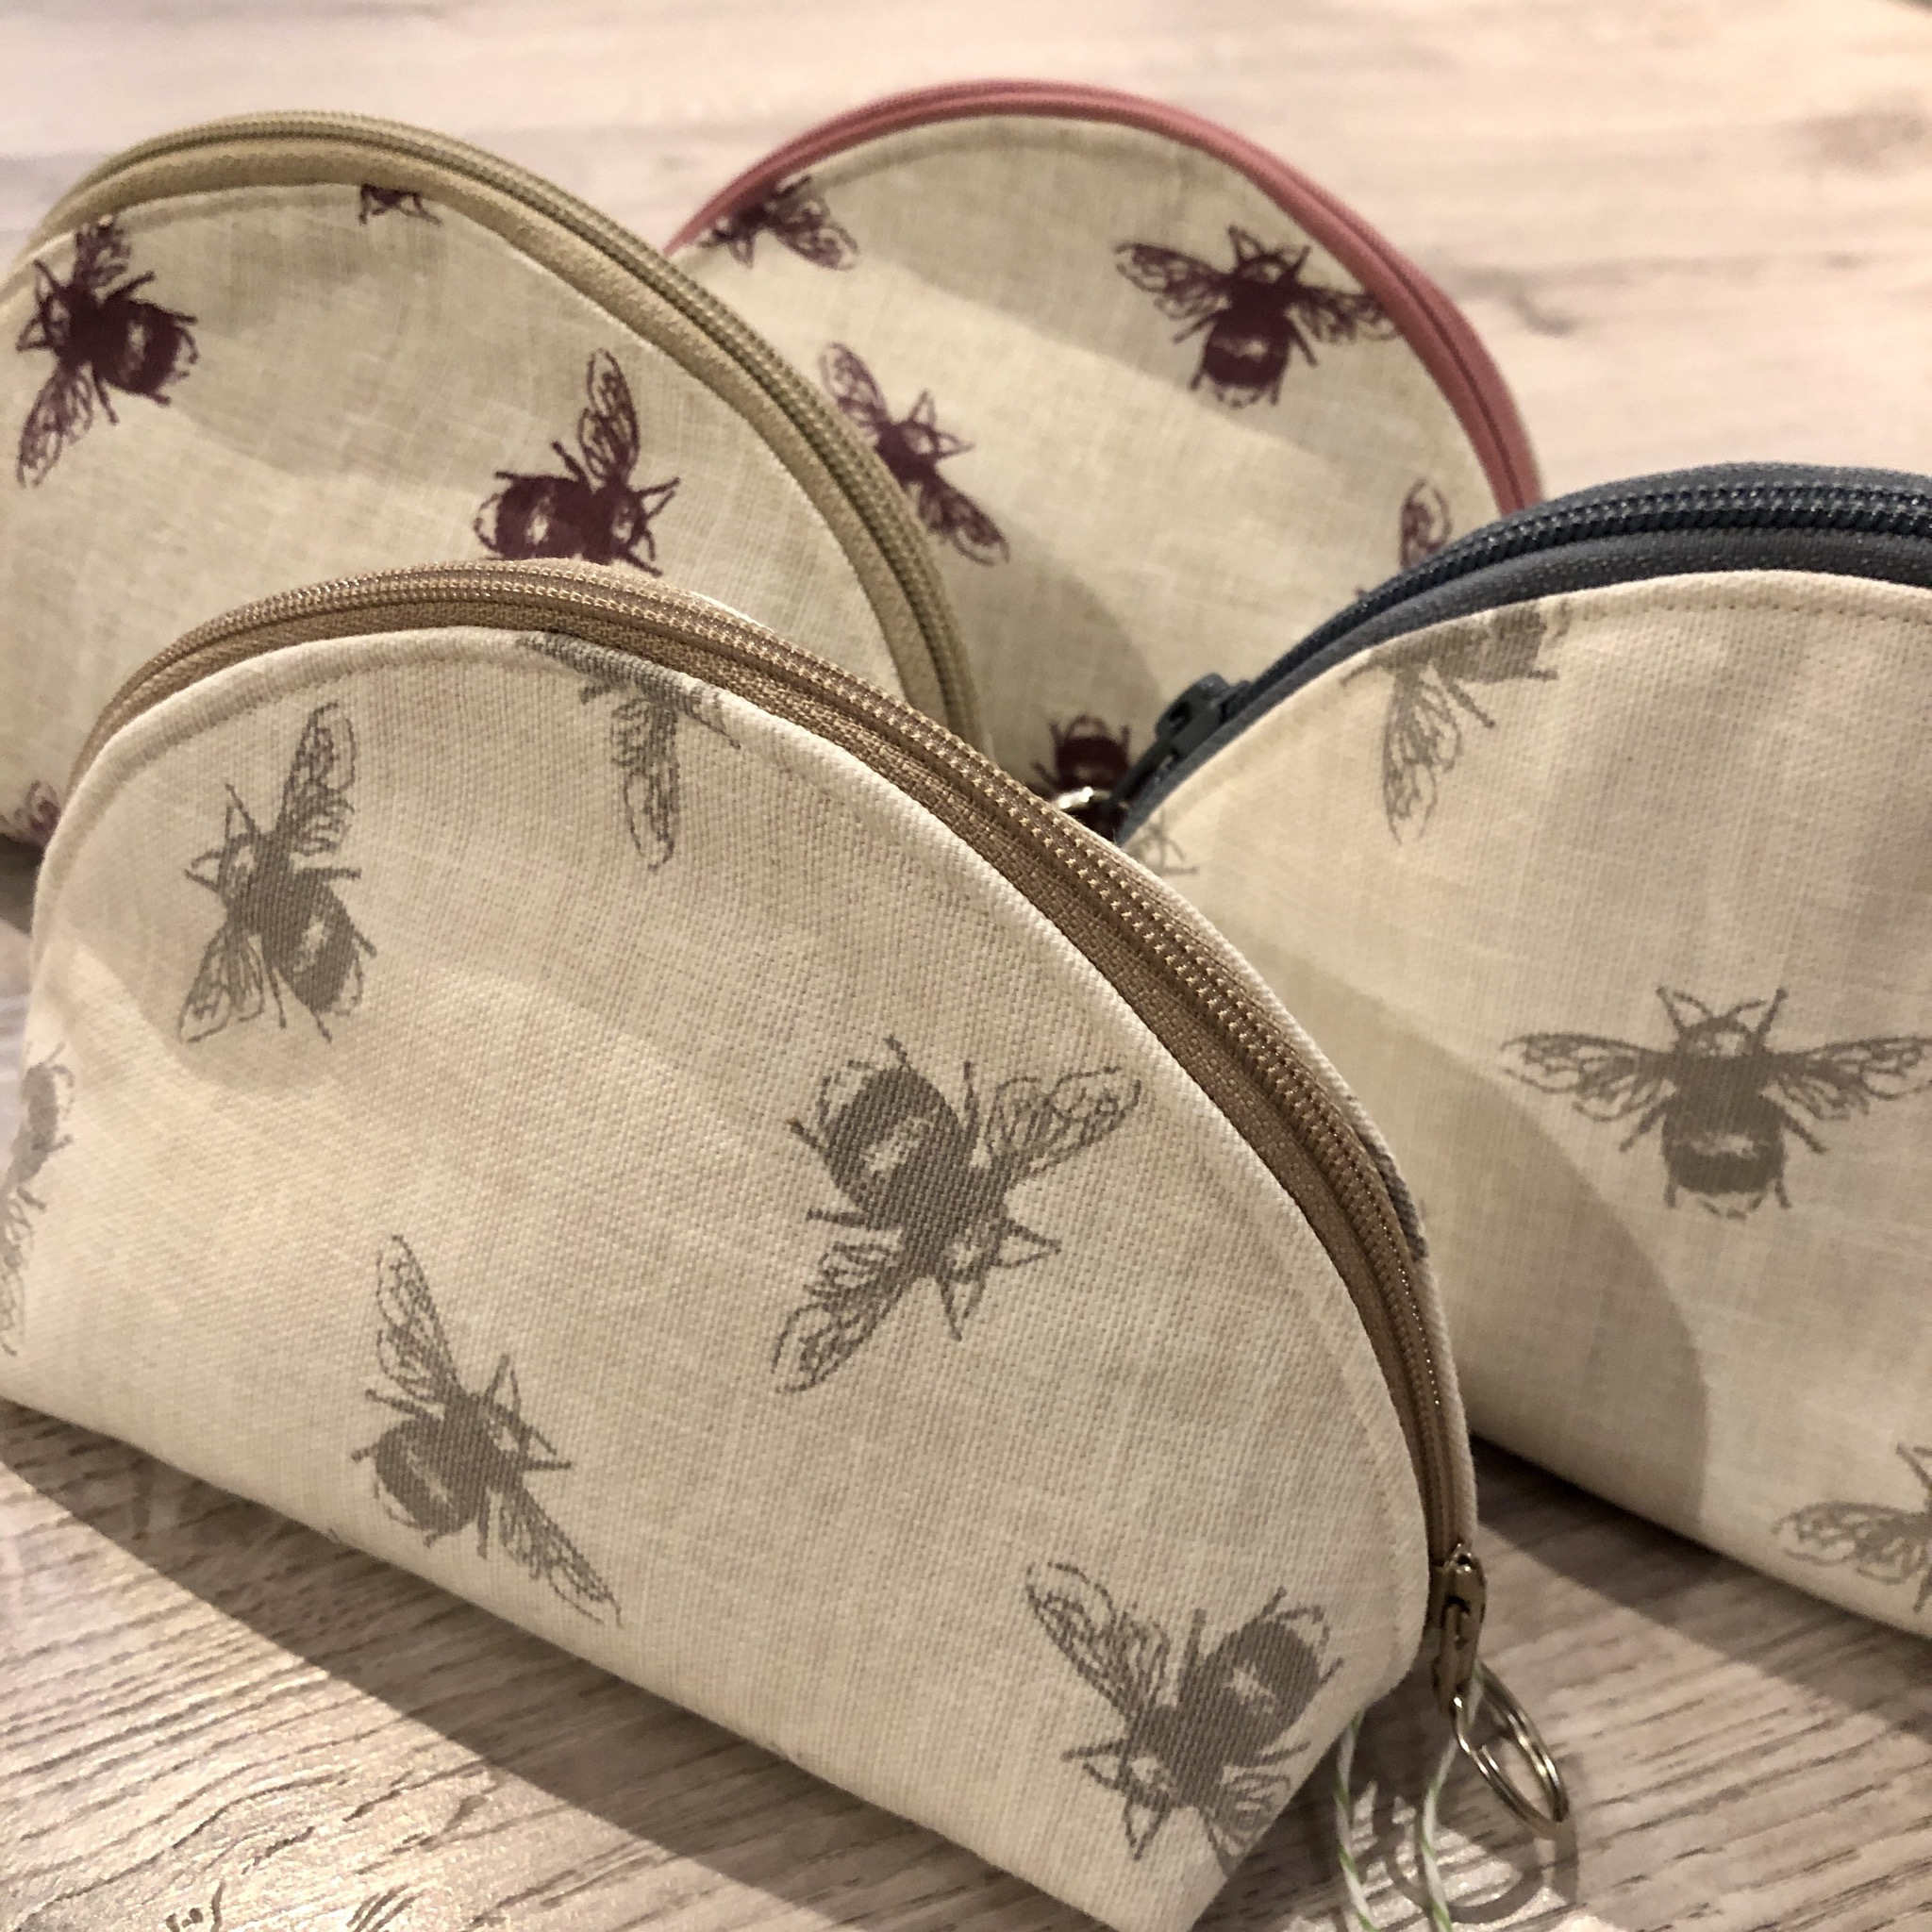 Bumble bee makeup pouches by Stella's stitchcraft